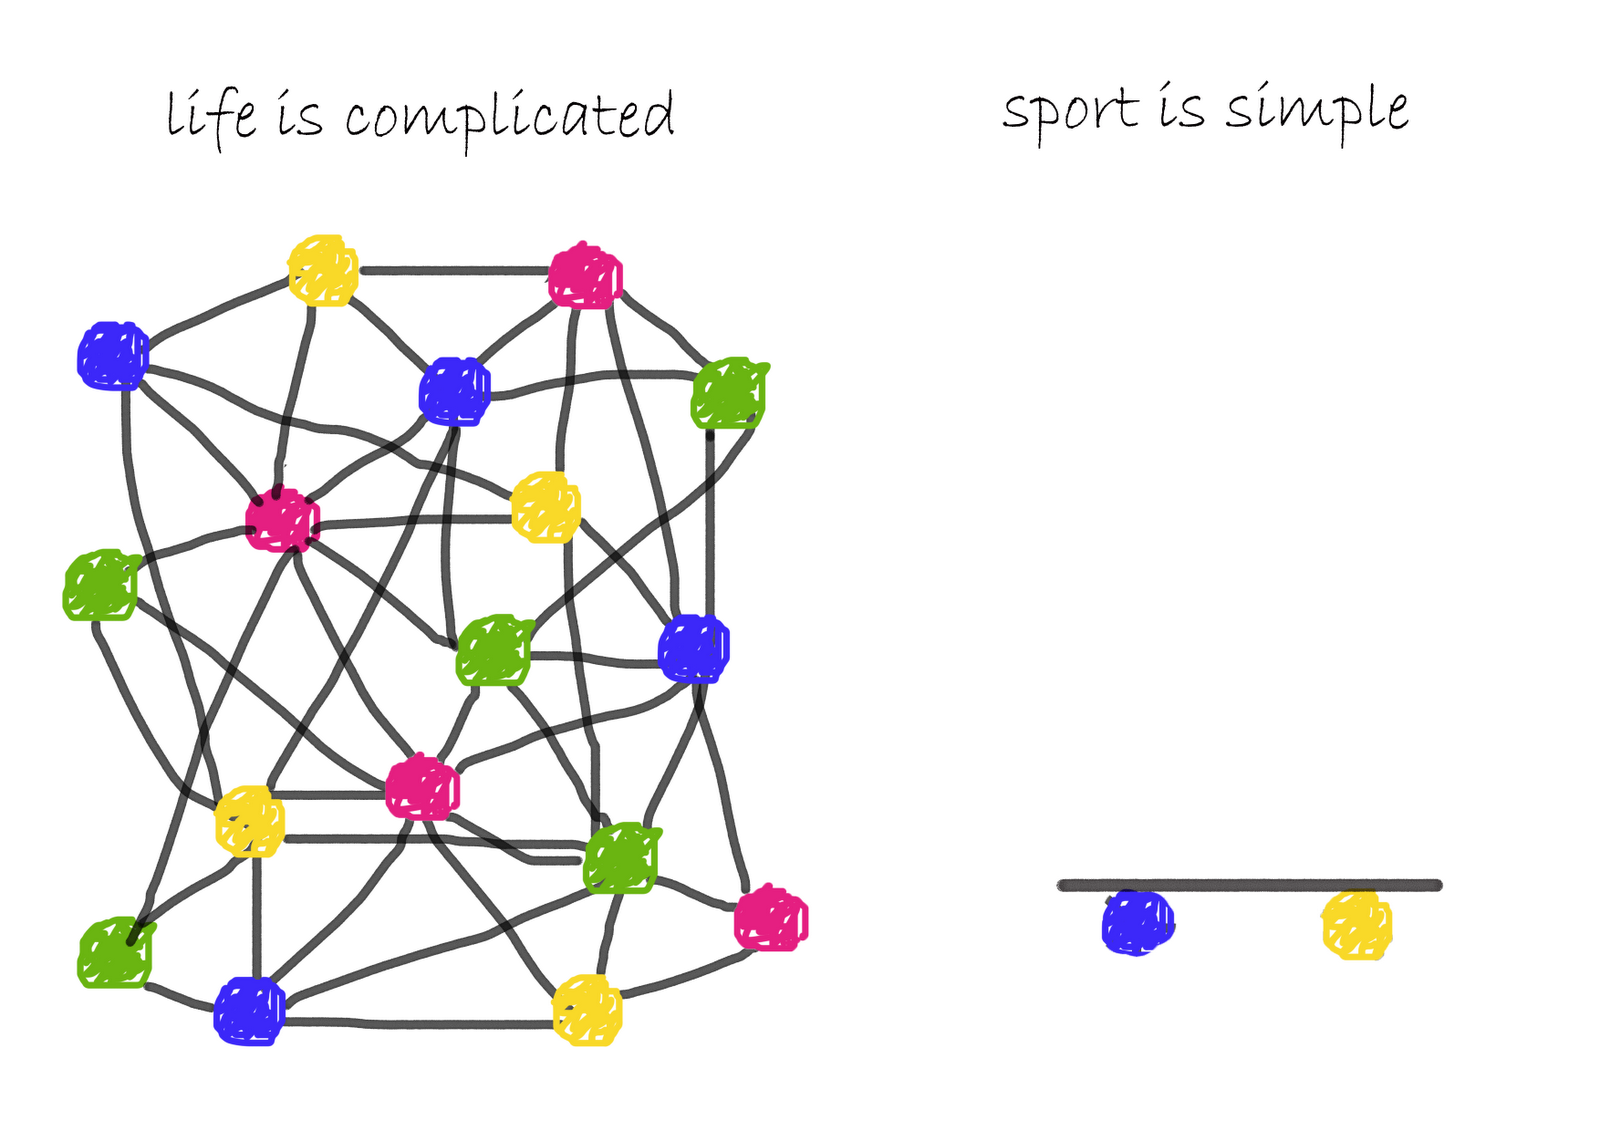 Life is complicated, sport is simple